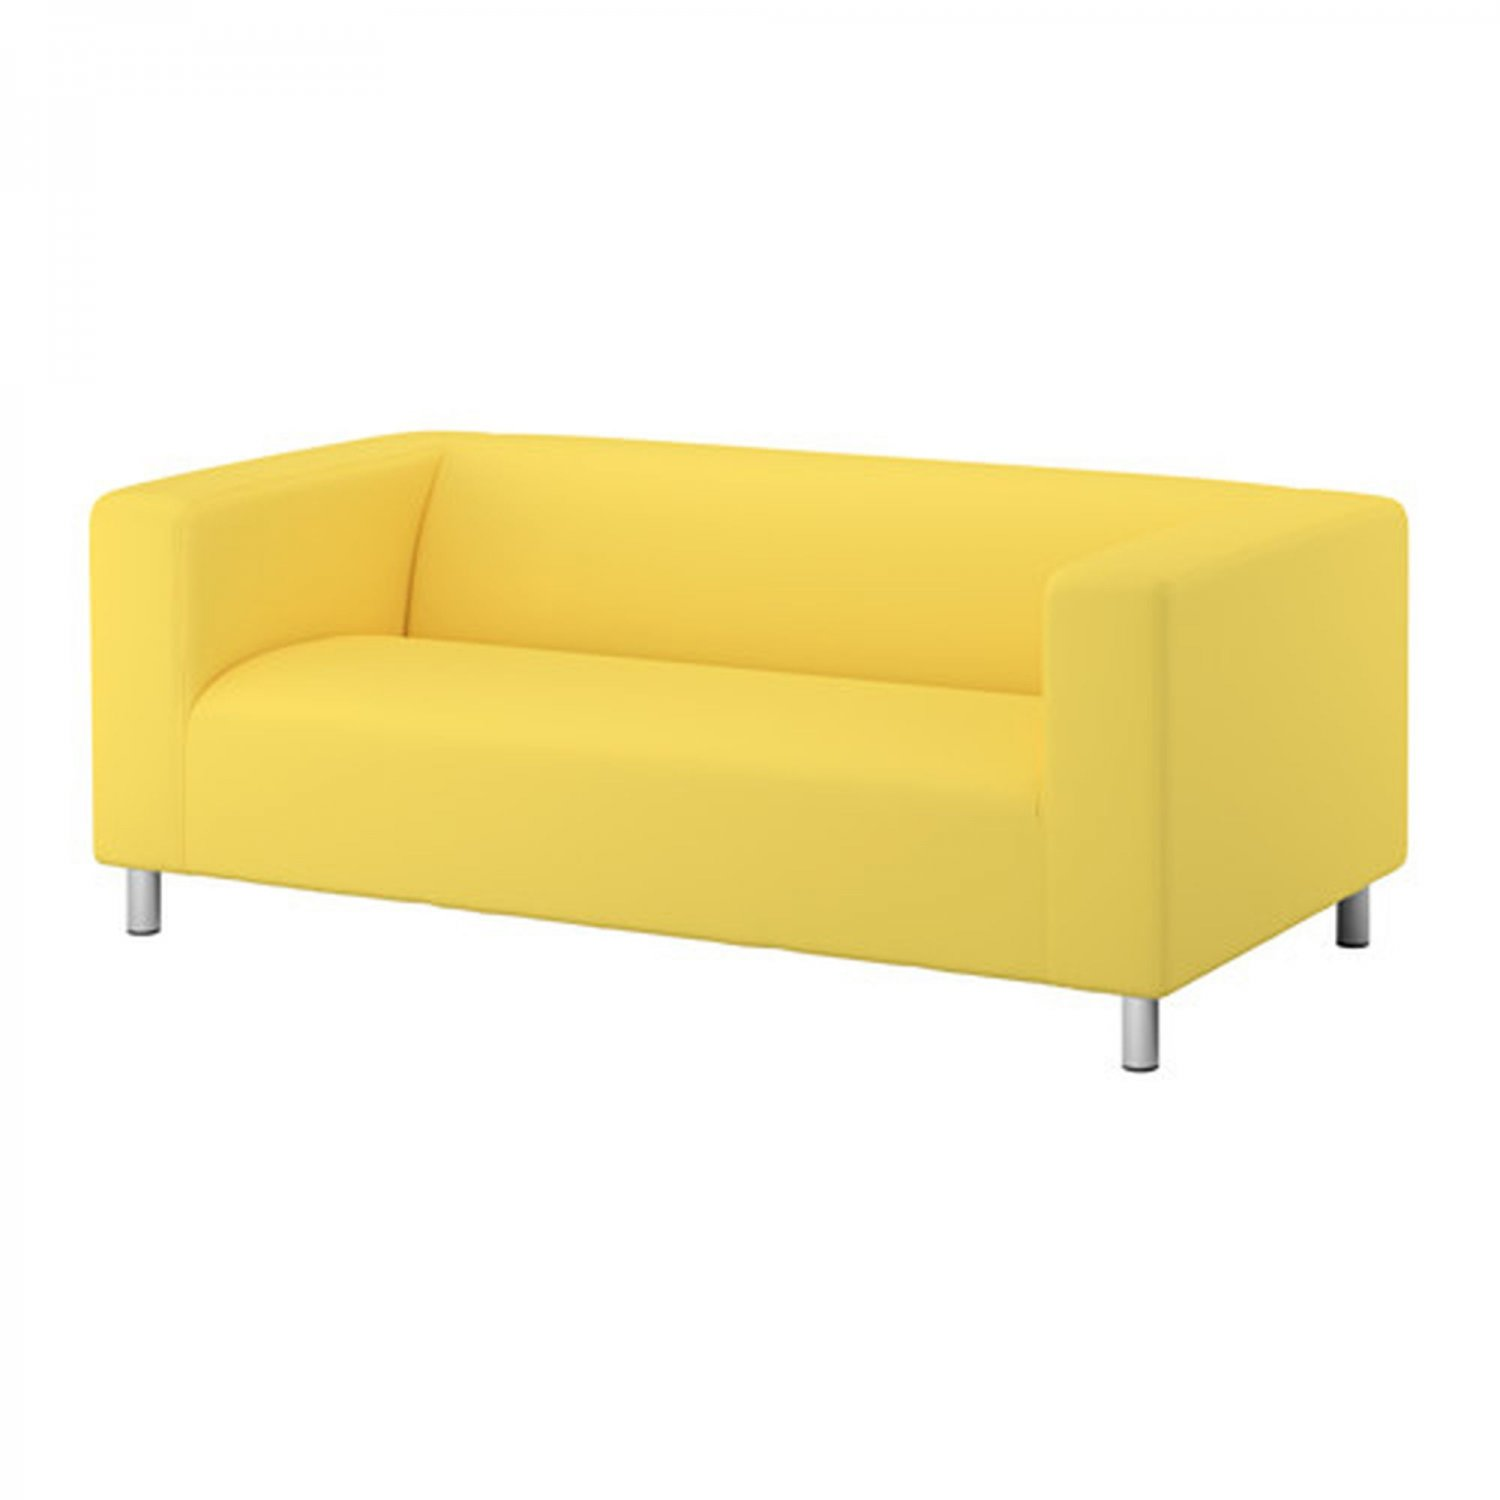 Ikea Sofa Cover Ikea Klippan Loveseat Sofa Slipcover Cover Vissle Yellow